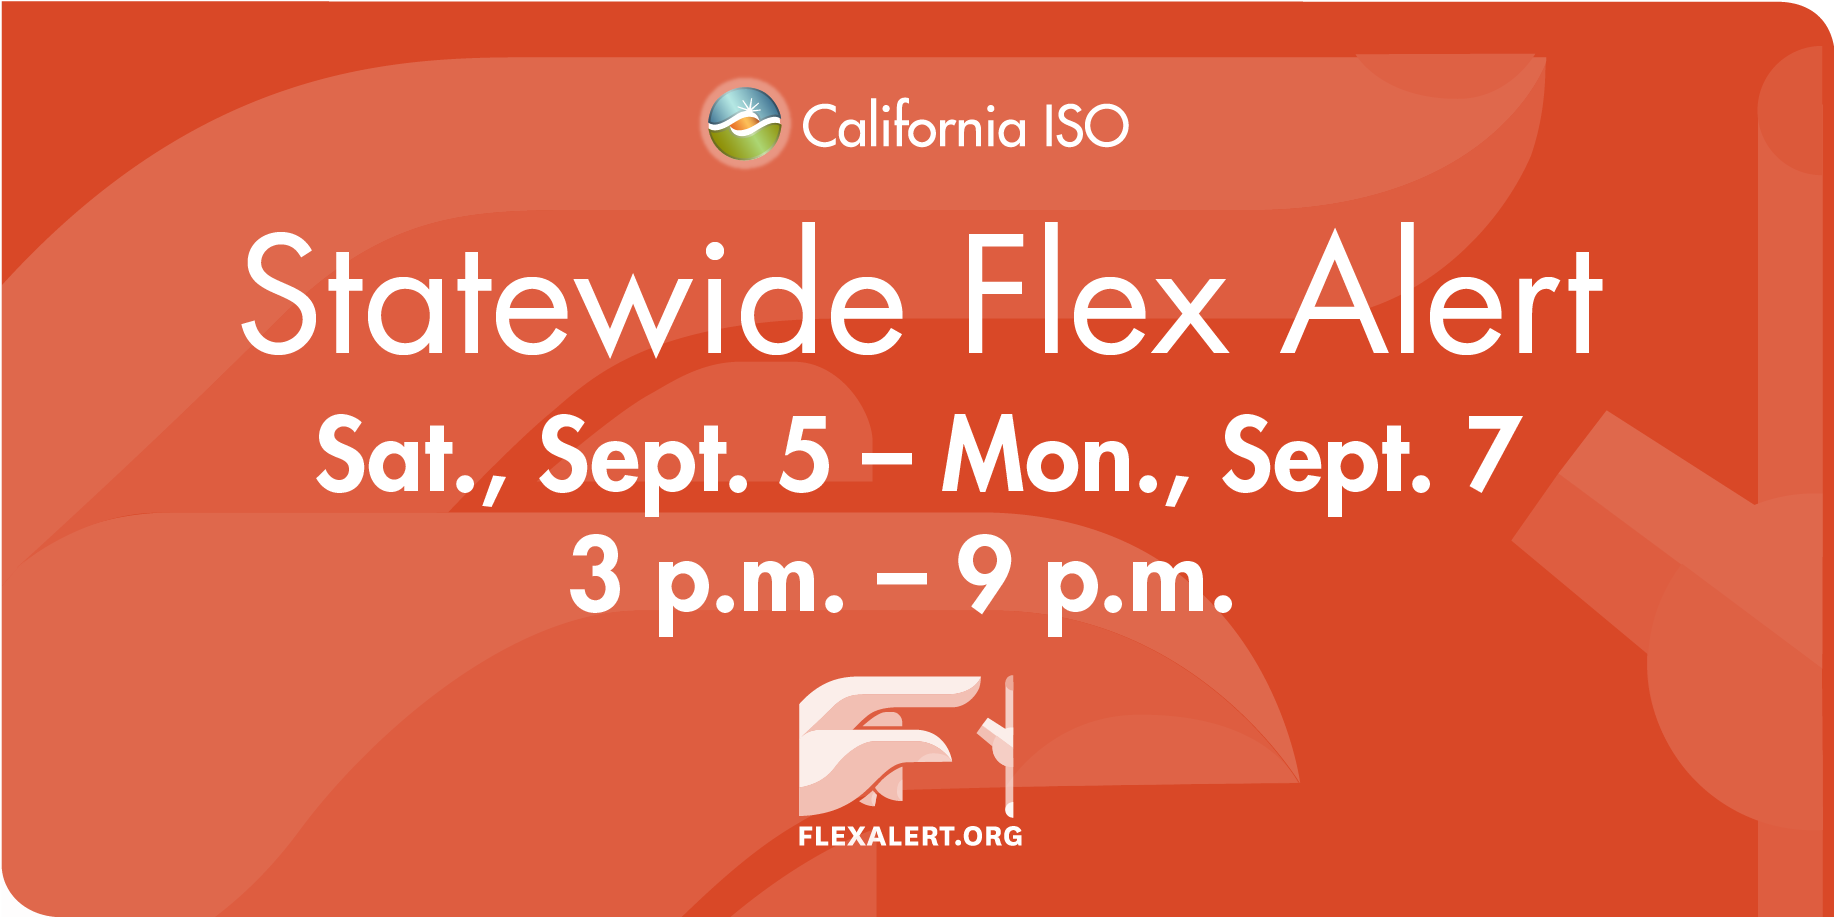 Flex Alert Issued For Holiday Weekend, Calling For Energy Conservation